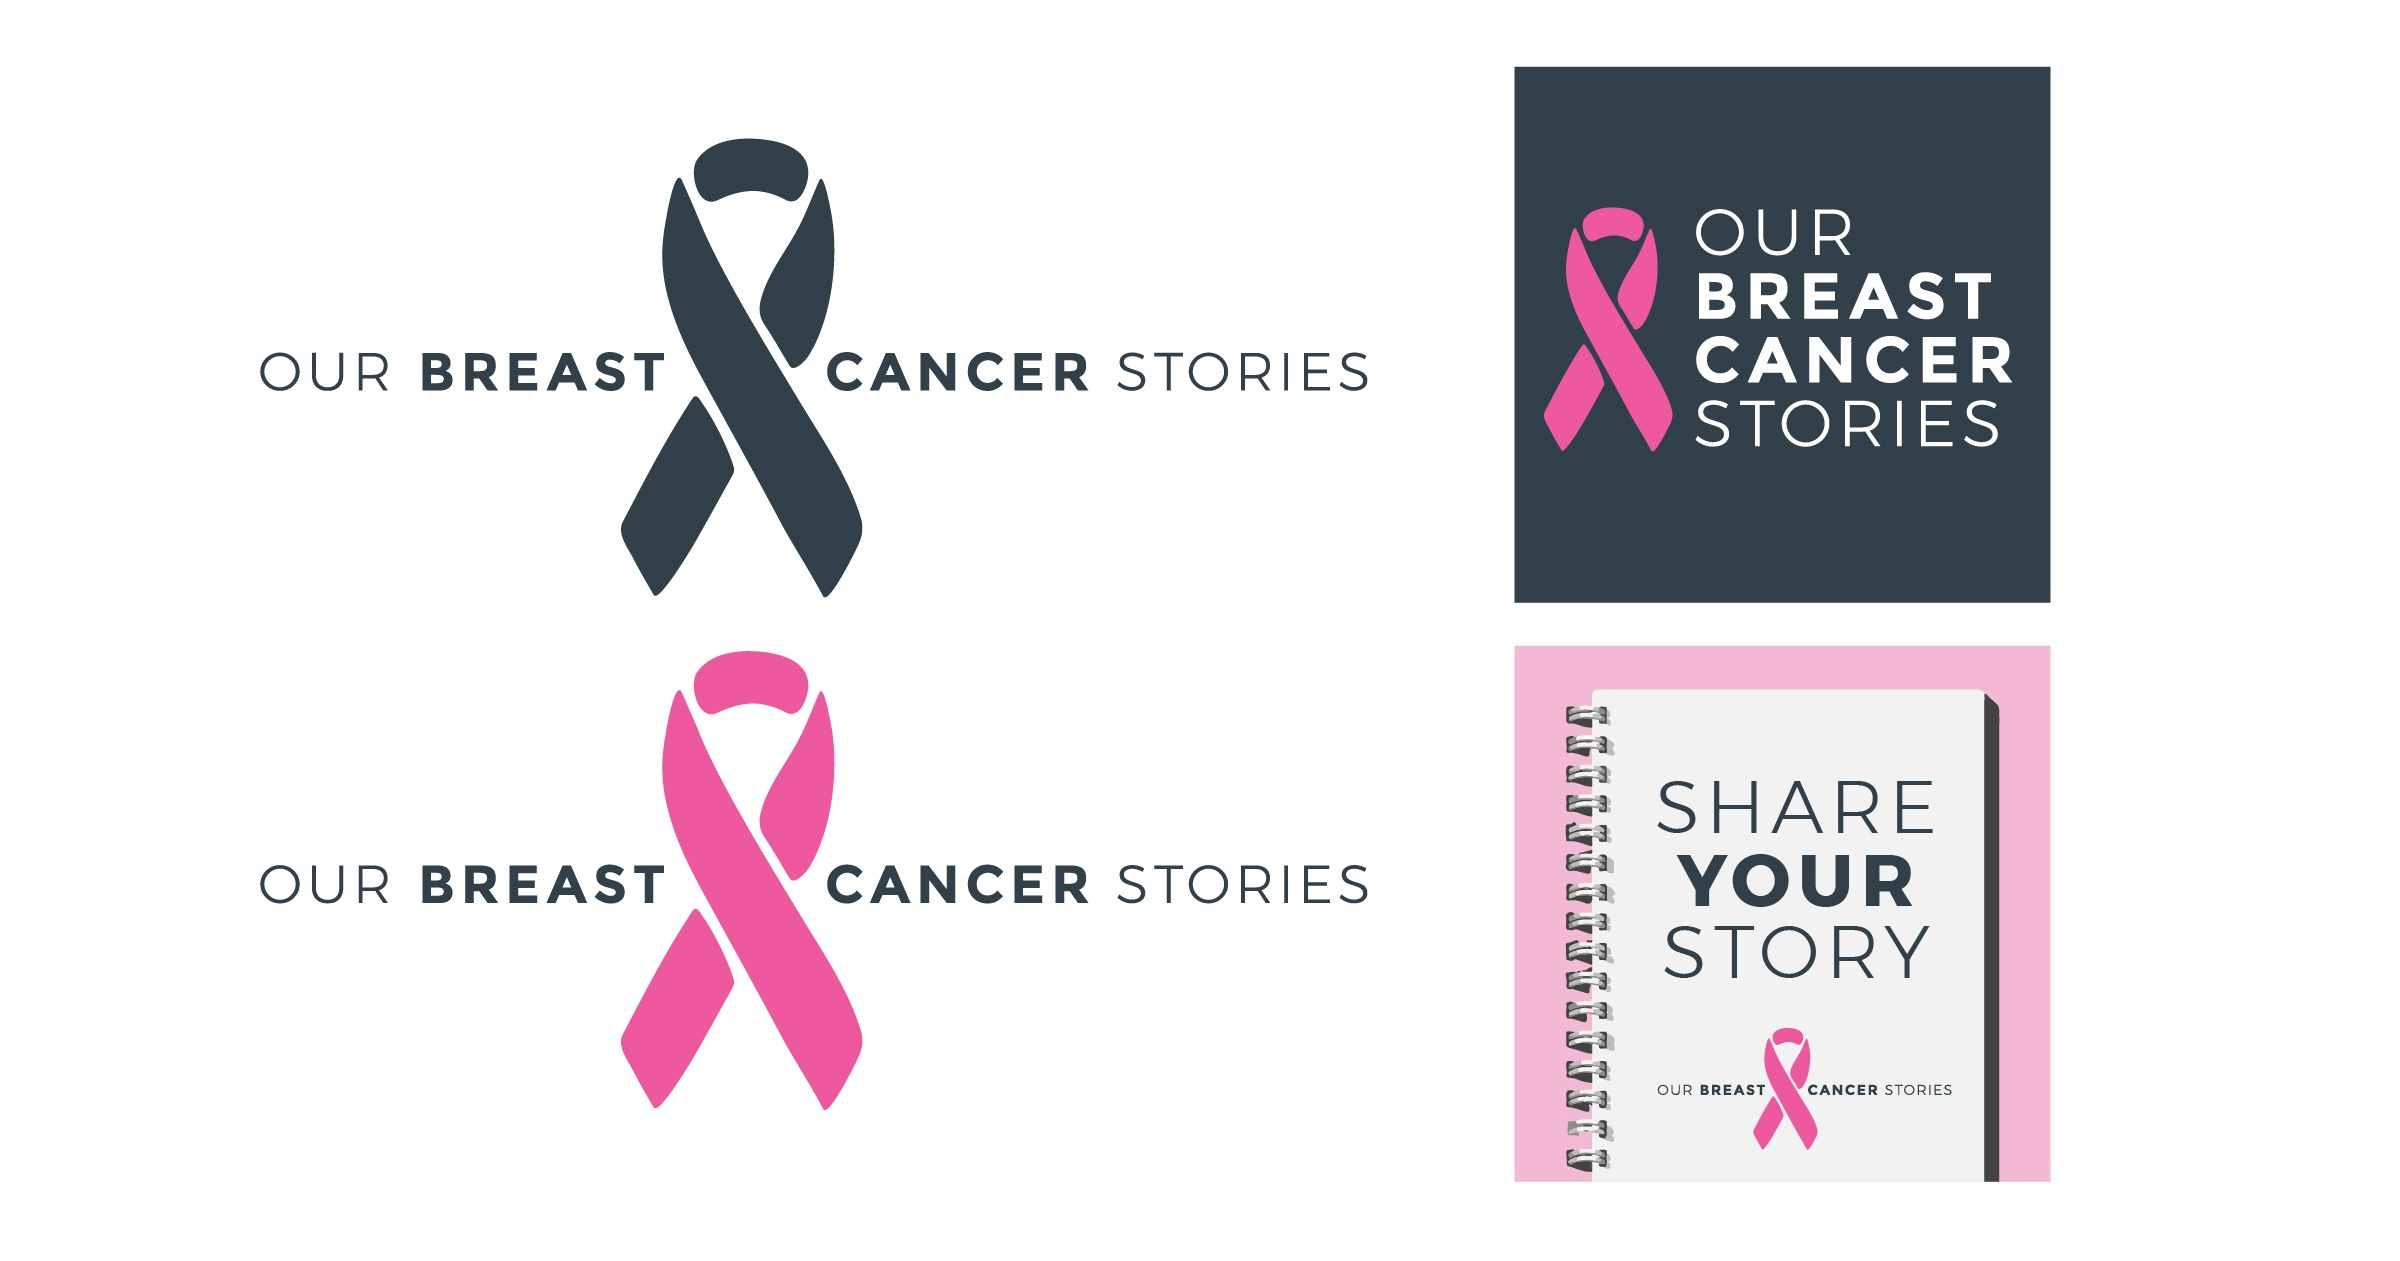 Final Branding - Logo, colors, and social graphic